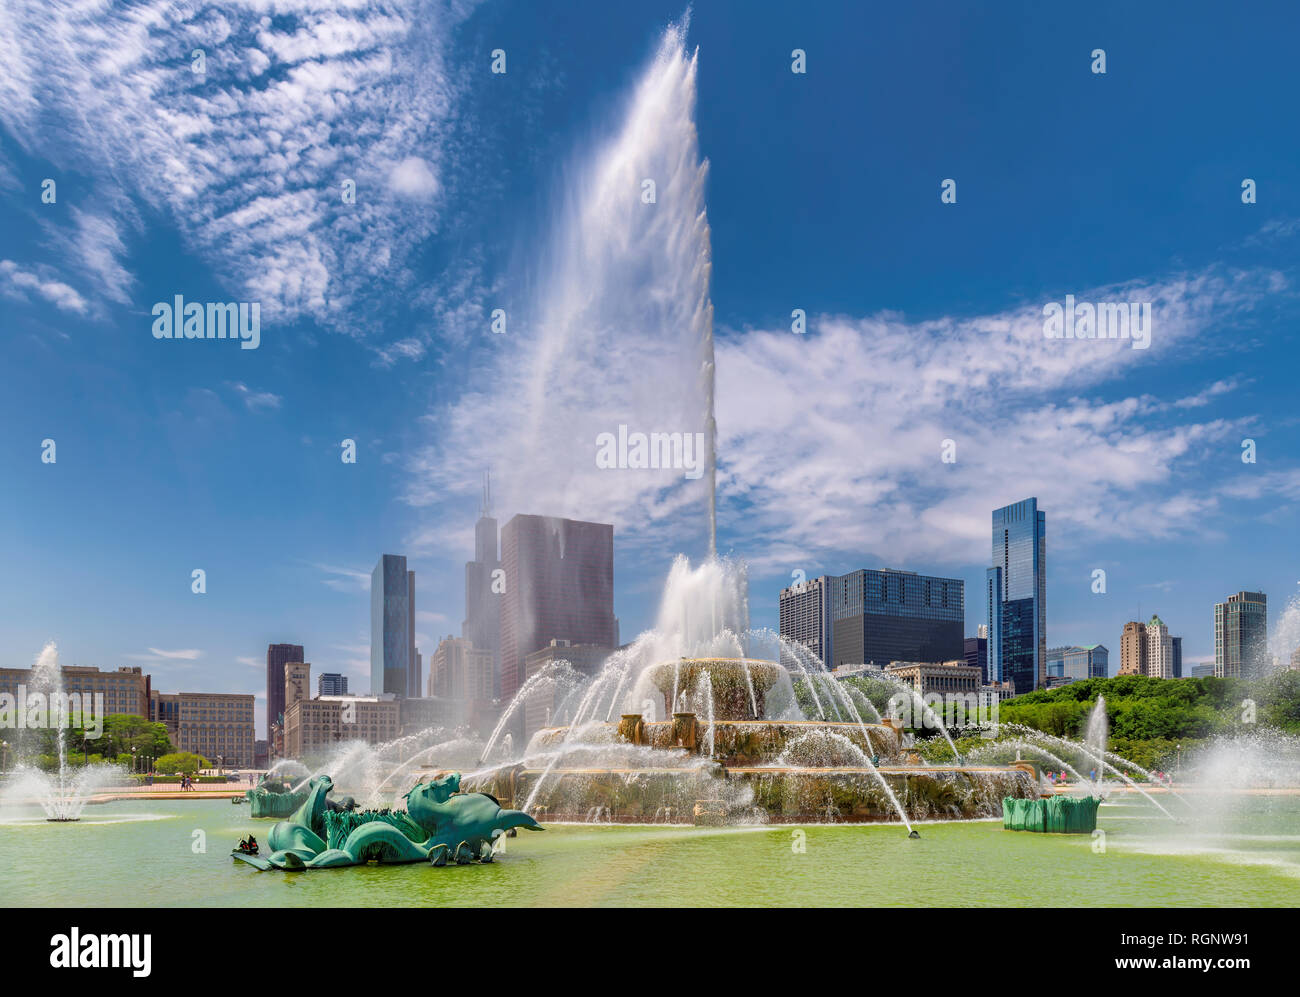 Buckingham fountain in Chicago, Illinois - Stock Image